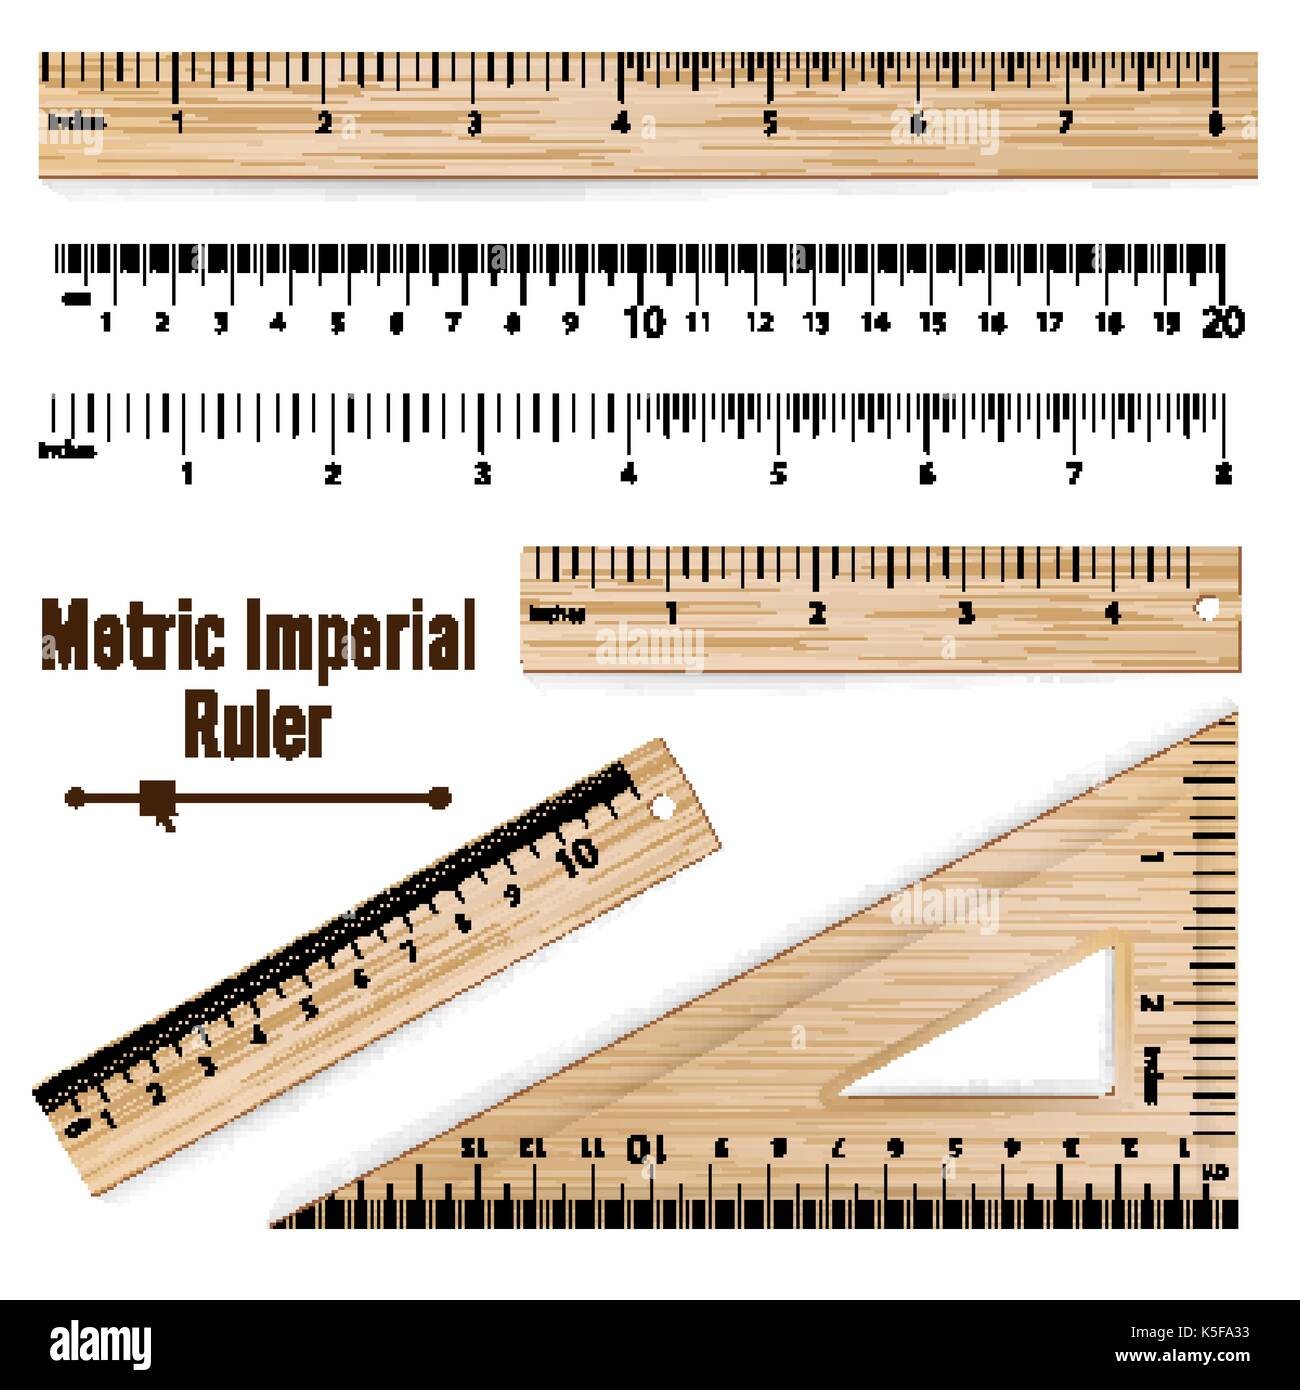 Wooden Metric Imperial Rulers Vector. Centimeter And Inch. Measure Tools Equipment Illustration Isolated On White Background. - Stock Vector